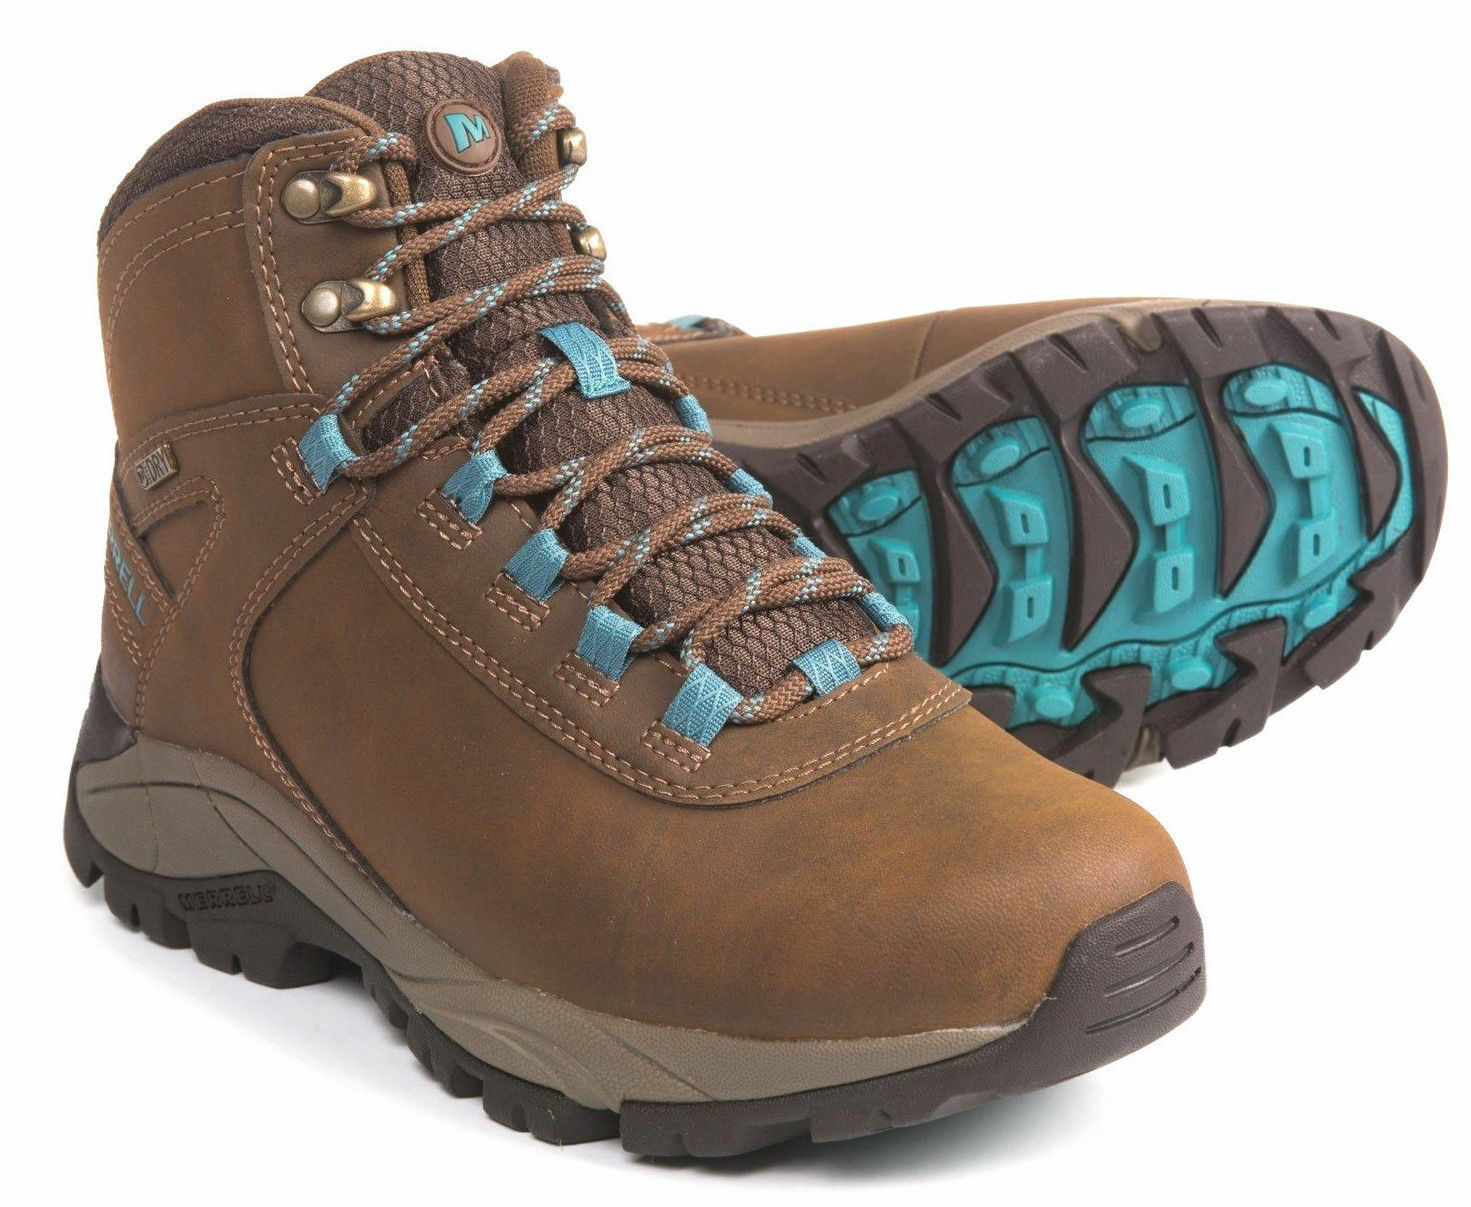 MERRELL M Select Waterproof Vego Mid women's Leather Hiking Trail boots